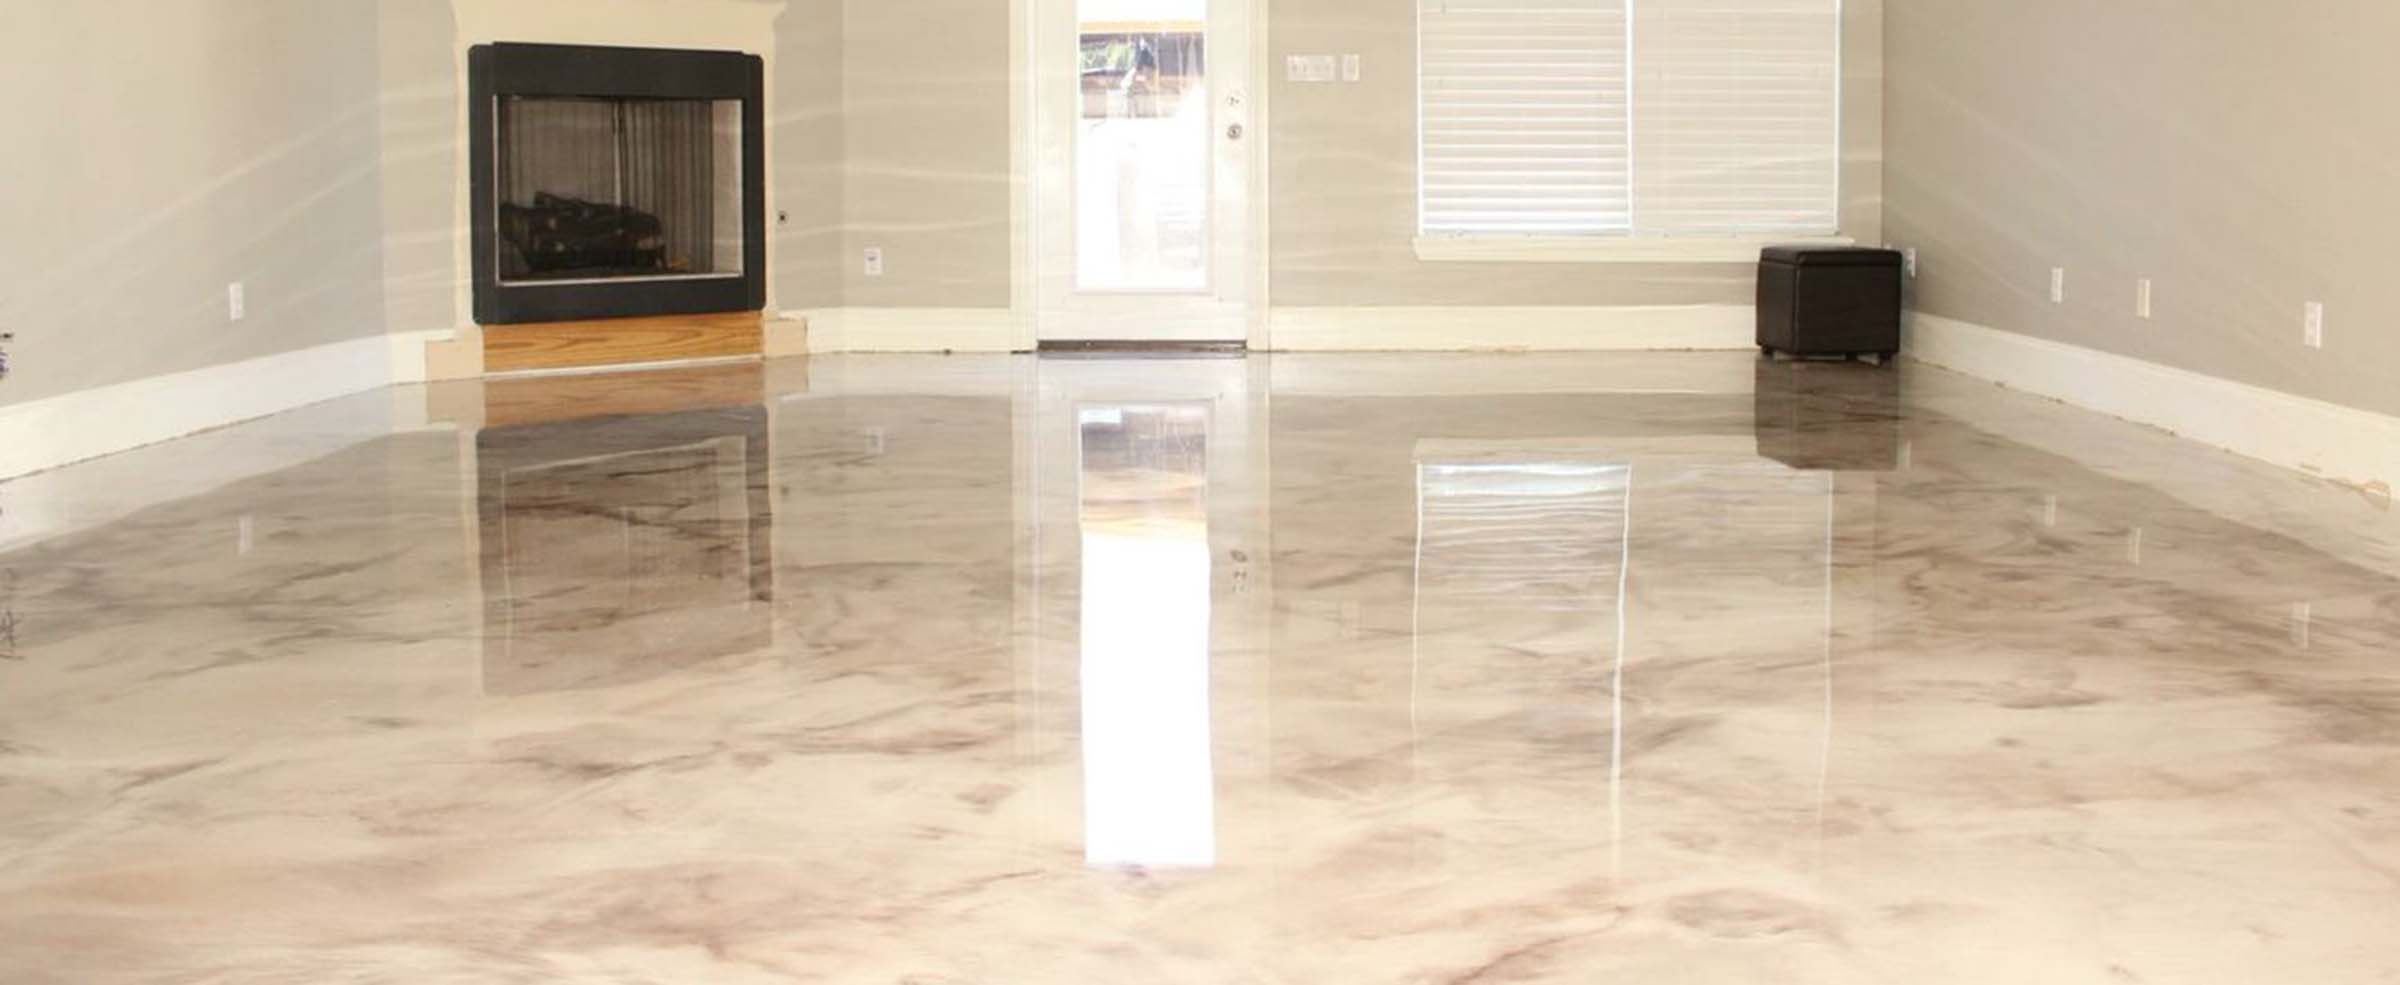 Elite Crete Bangladesh Professional Epoxy Flooring In Bangladesh